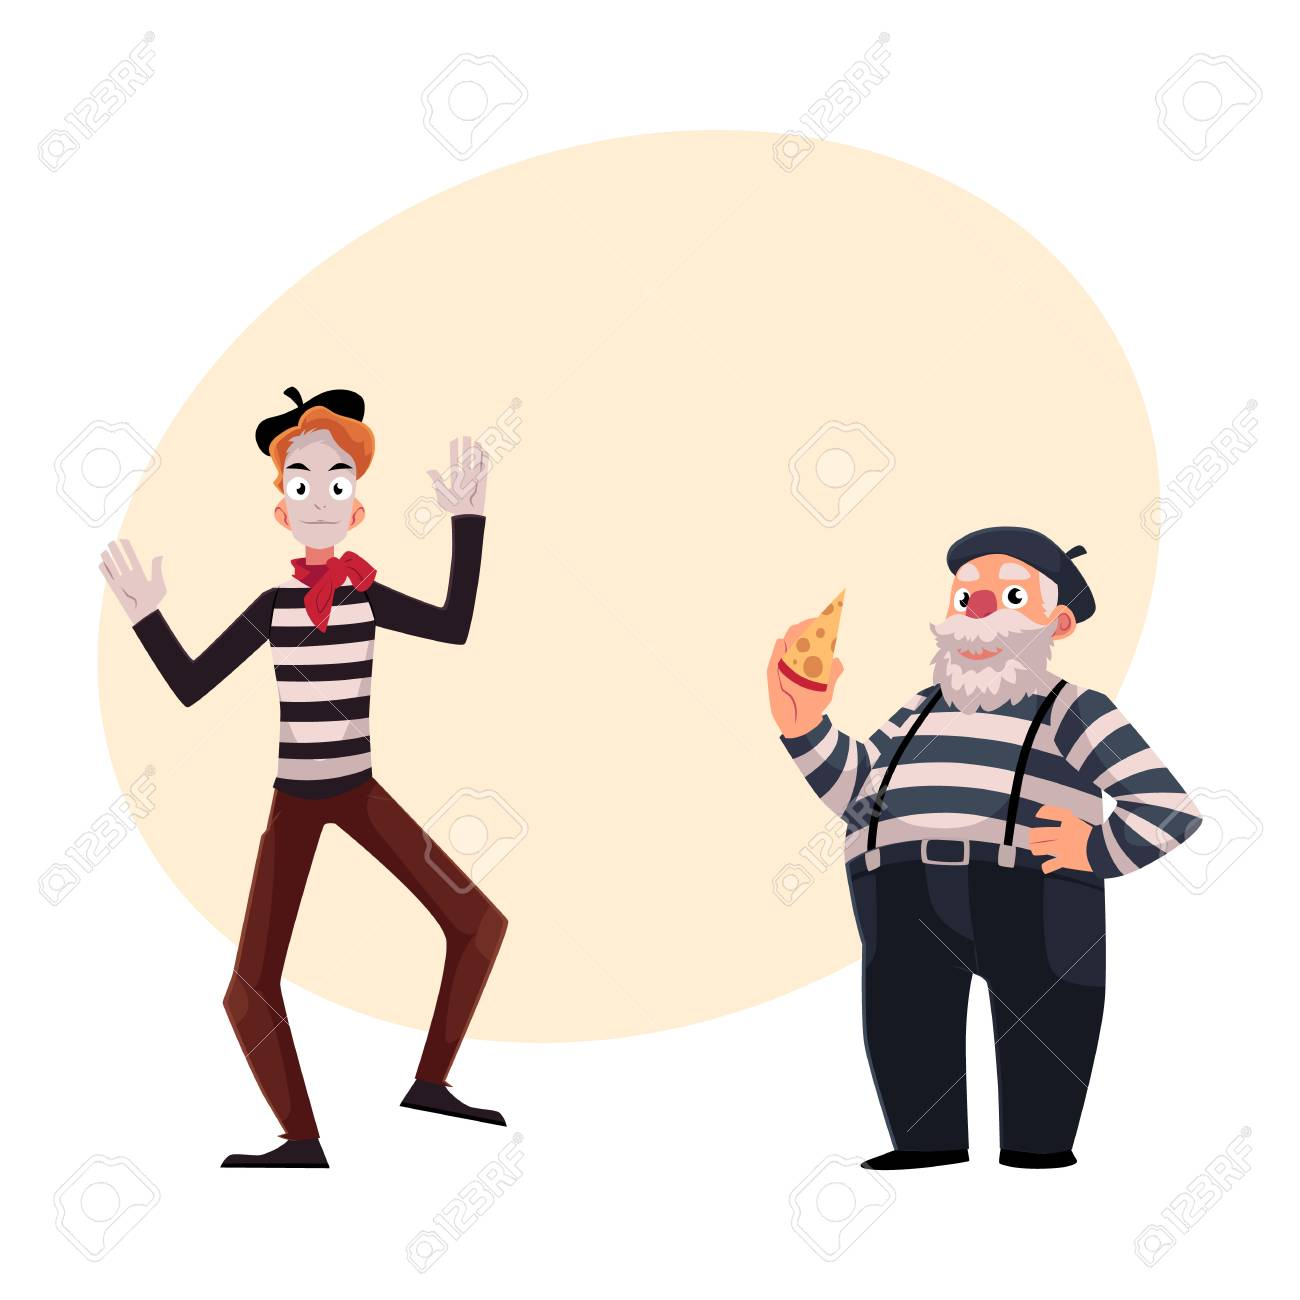 Two french mimes young and old in traditional costumes as two french mimes young and old in traditional costumes as symbols of france biocorpaavc